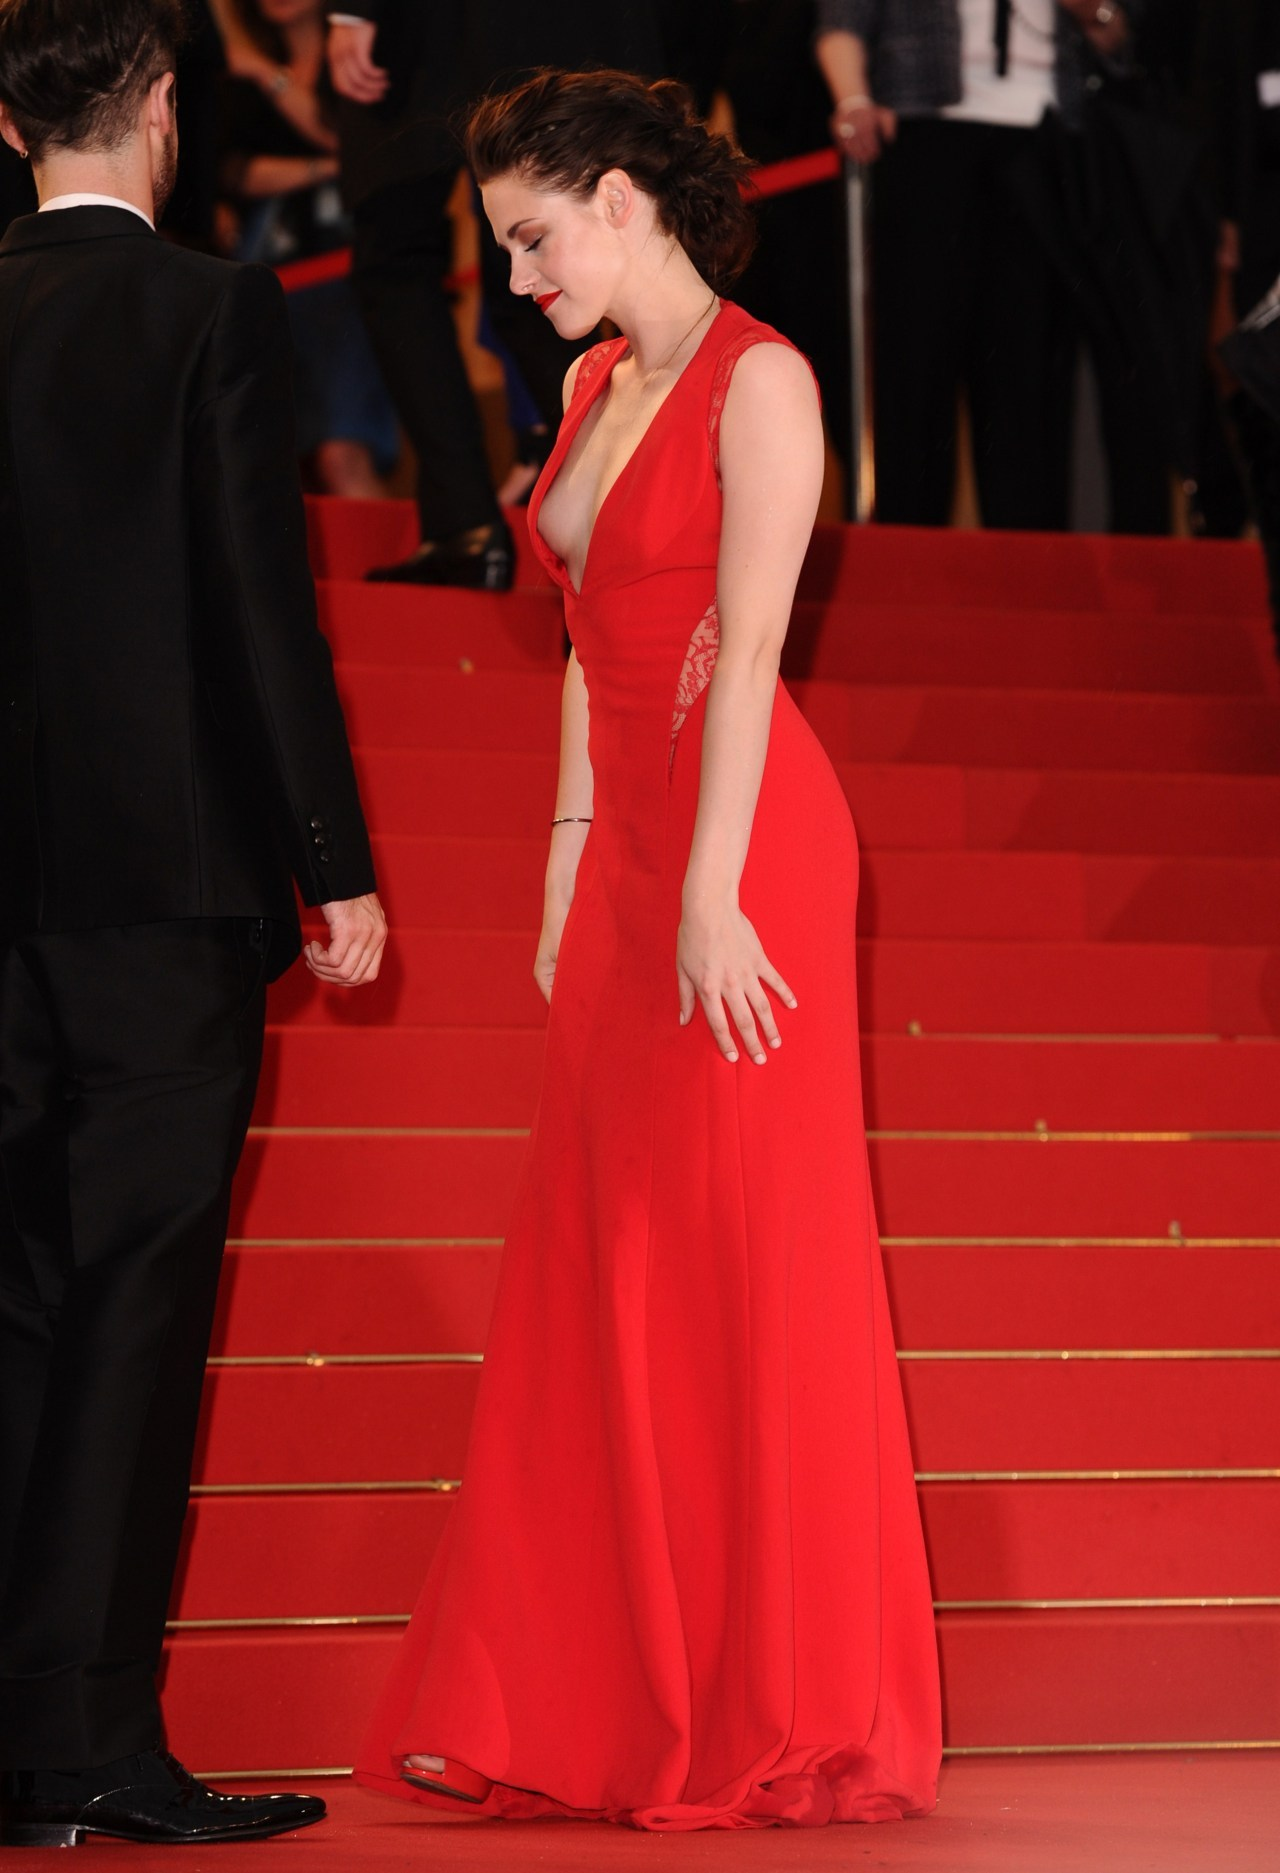 suicideblonde:  Kristen Stewart wearing Reem Acra at the Cosmopolis premiere at the Cannes Film Festival, May 25th